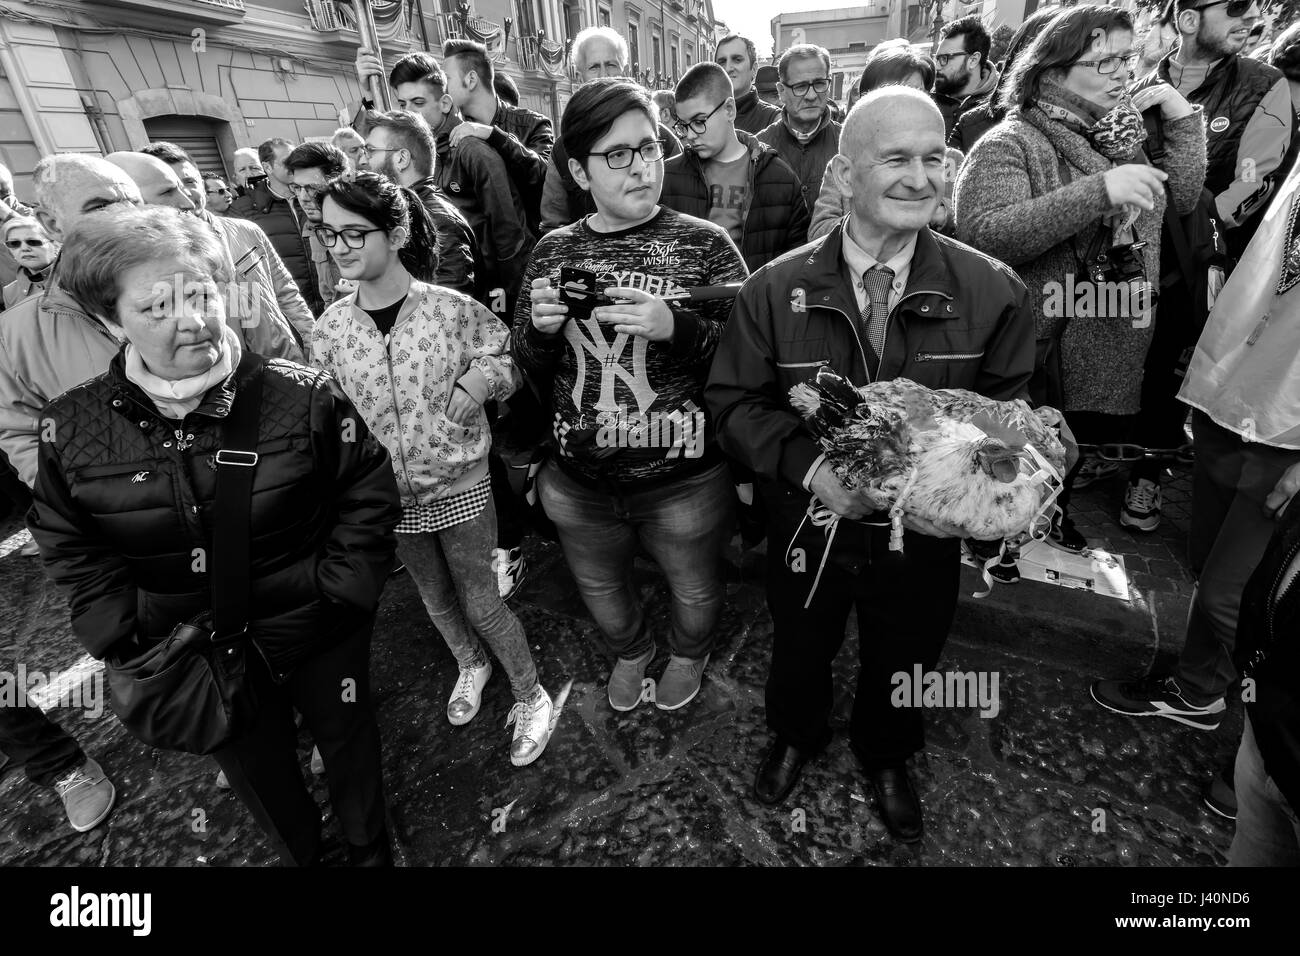 Madonna of the Hens, popular festival of the town of Pagani, Salerno, Italy. - Stock Image